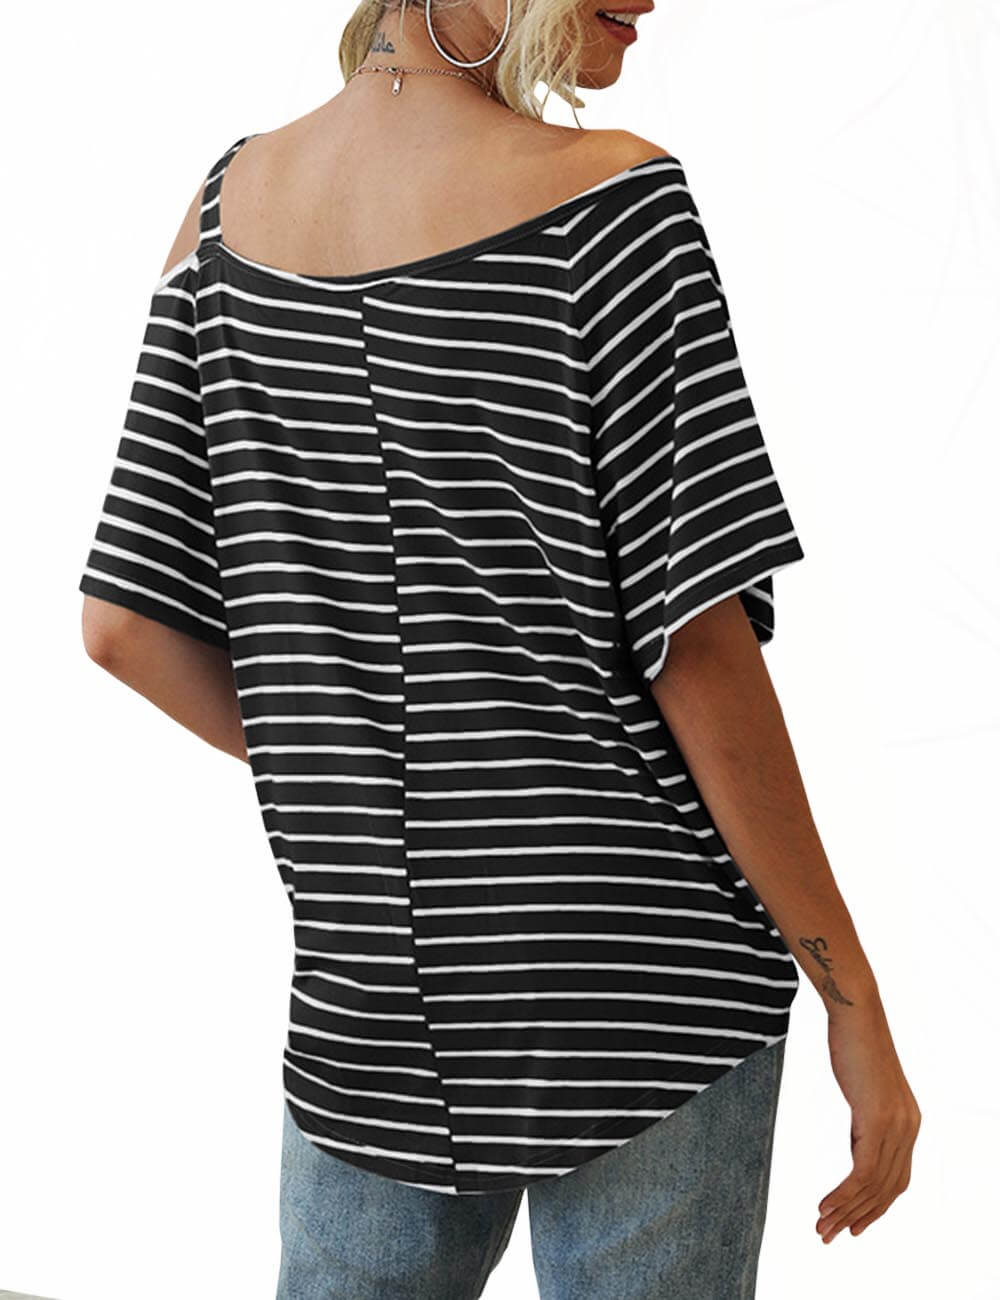 Women's One Shoulder Cotton Tee Short Sleeve Front Bow Tie Loose Striped Cold Shoulder Basic Tshirts